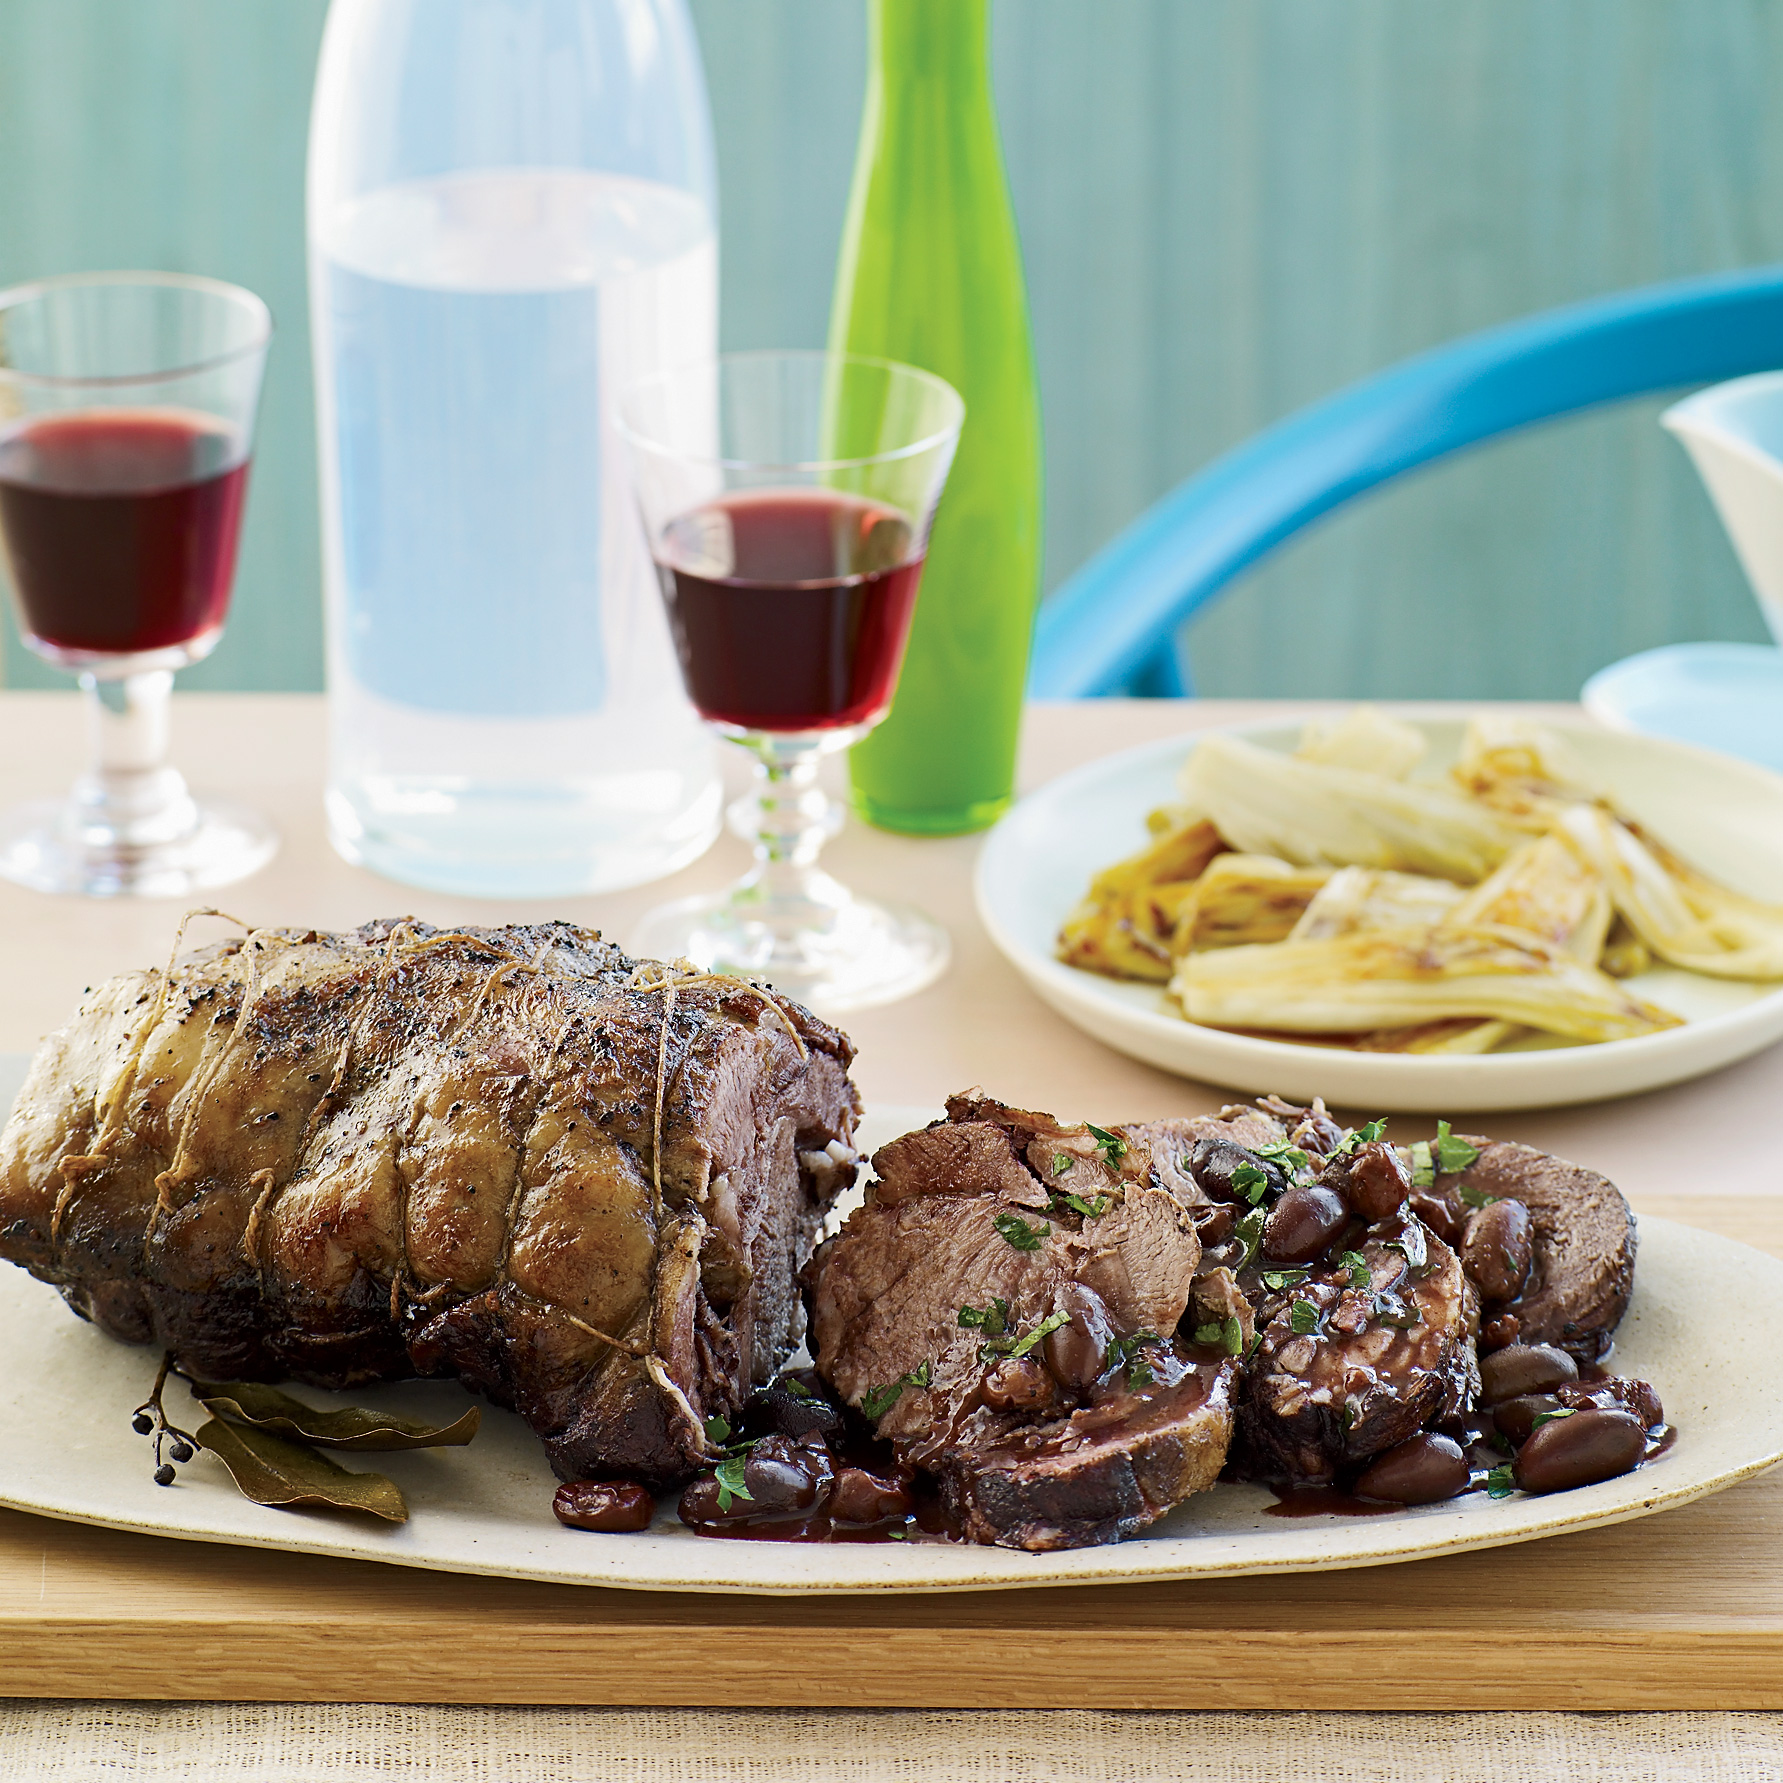 Syrah-Braised Lamb with Olives, Cherries and Endives